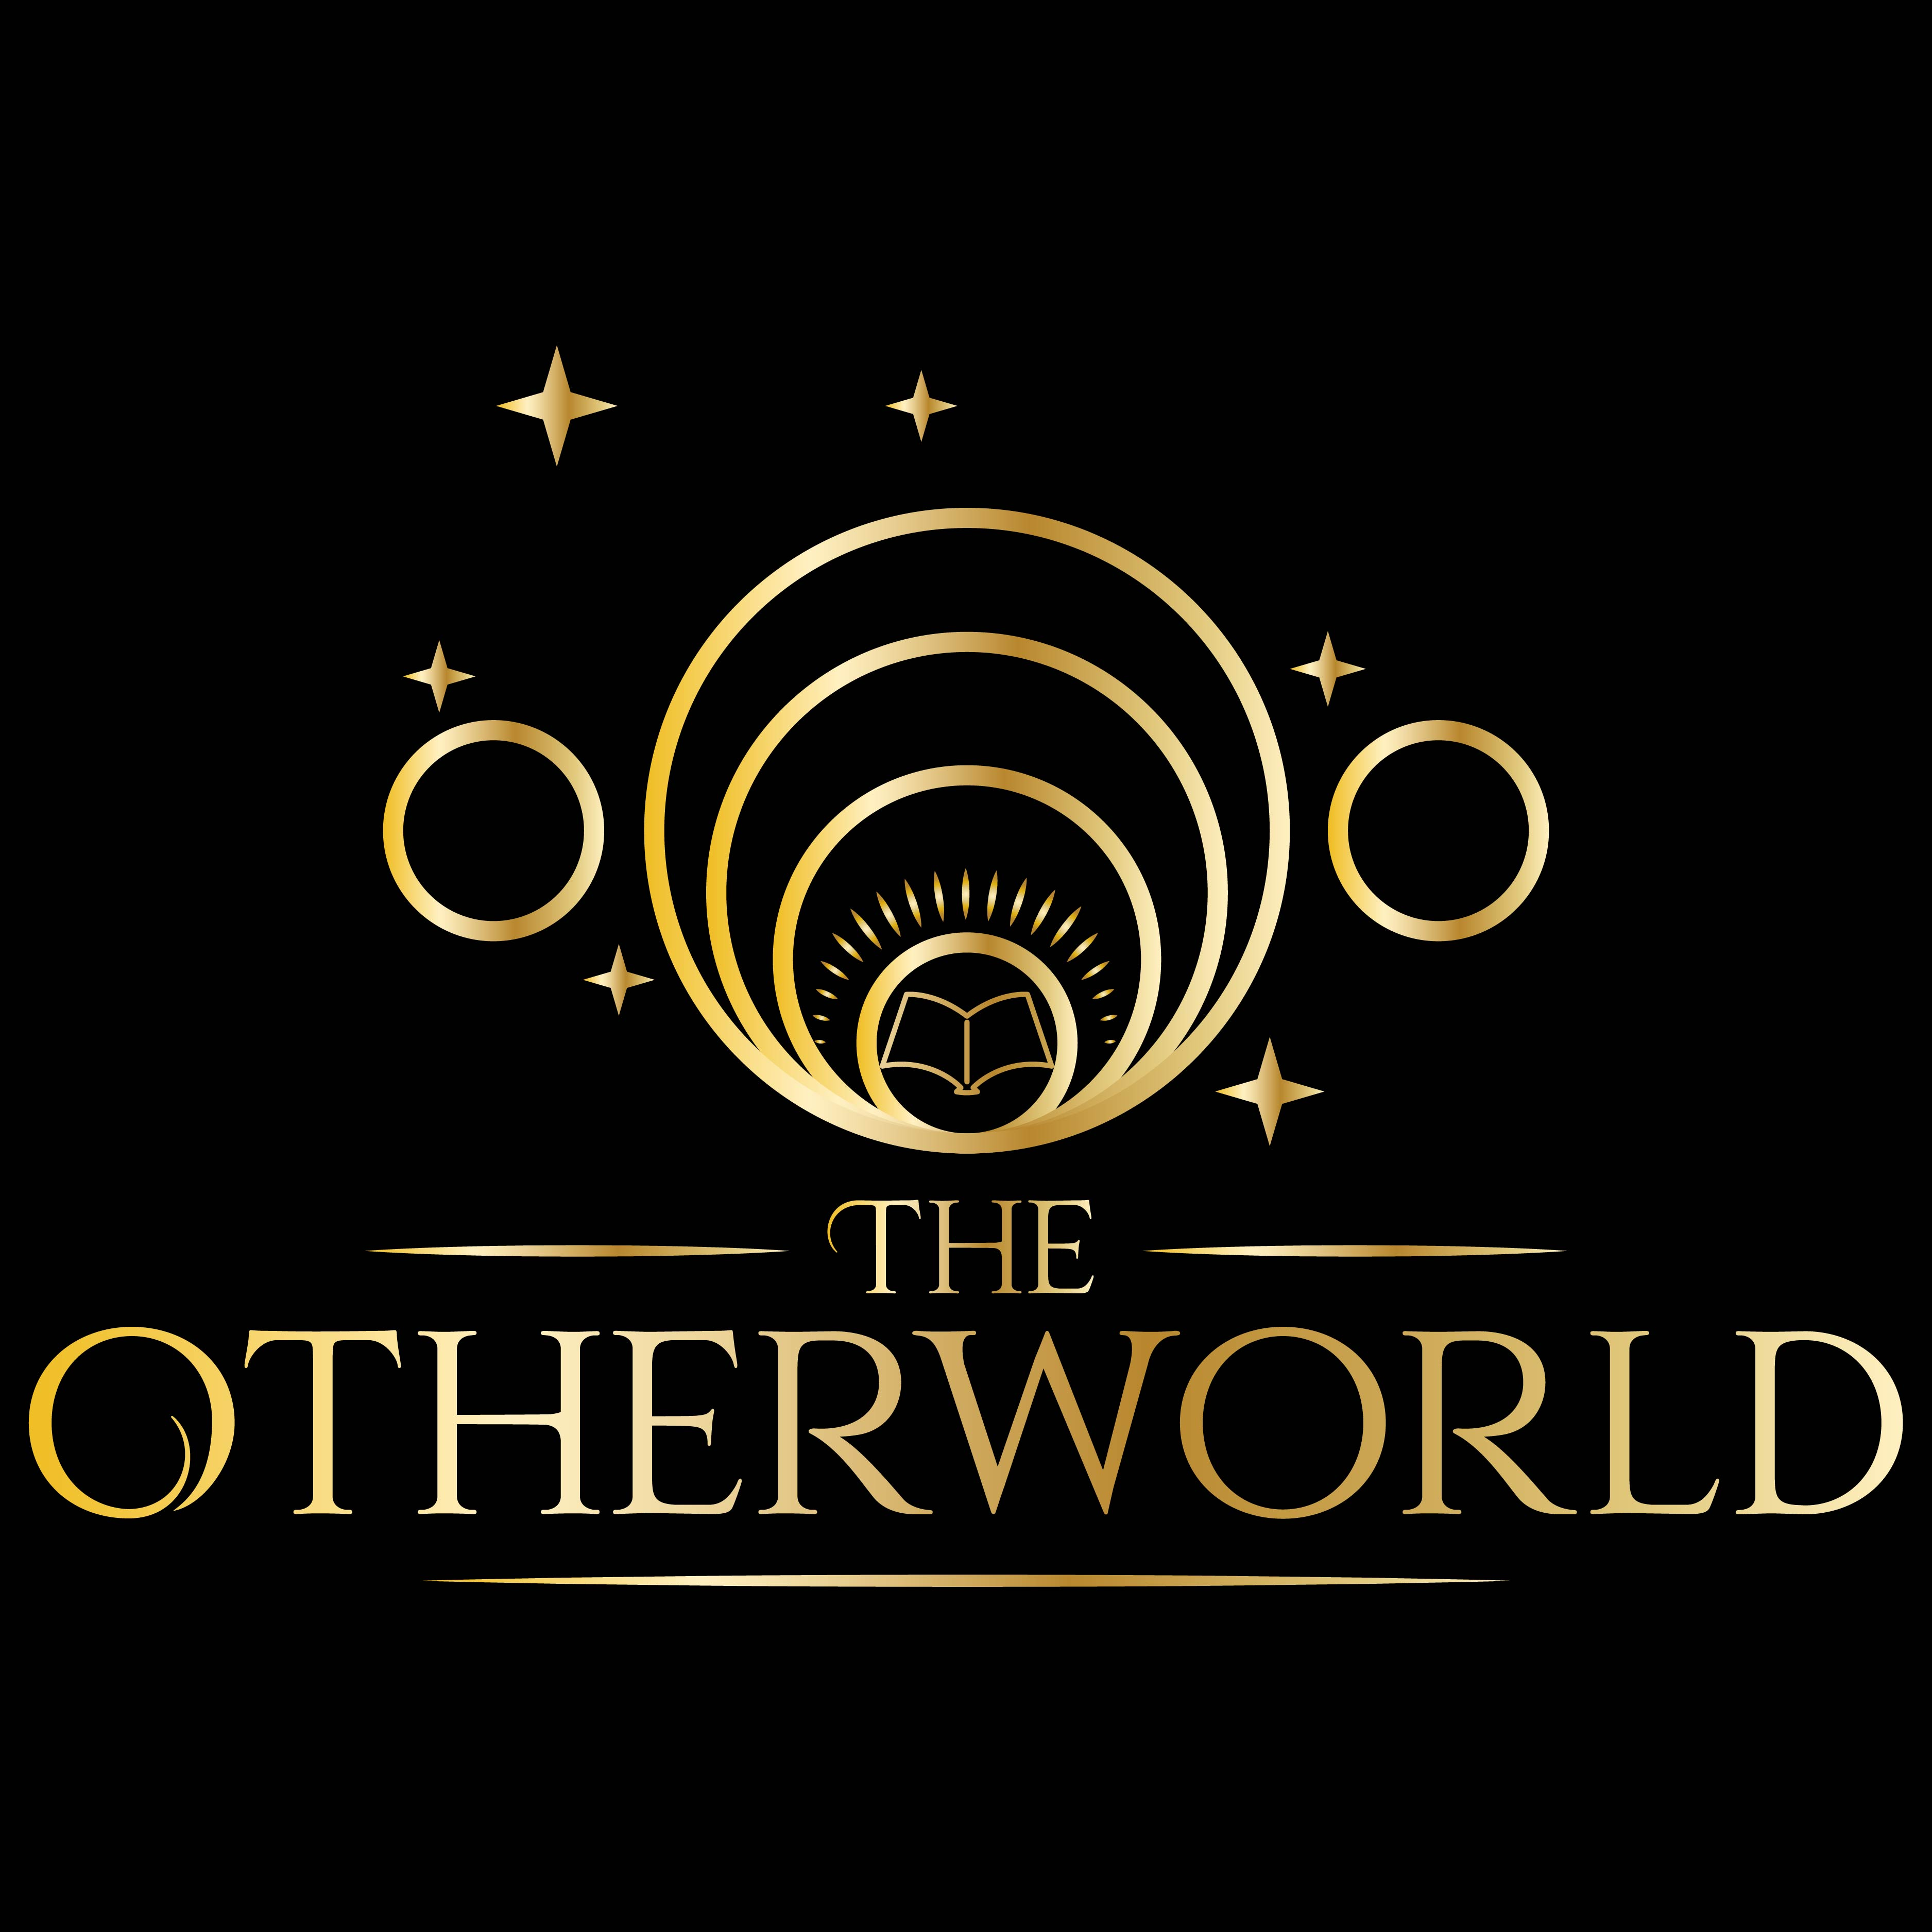 The Otherworld-01